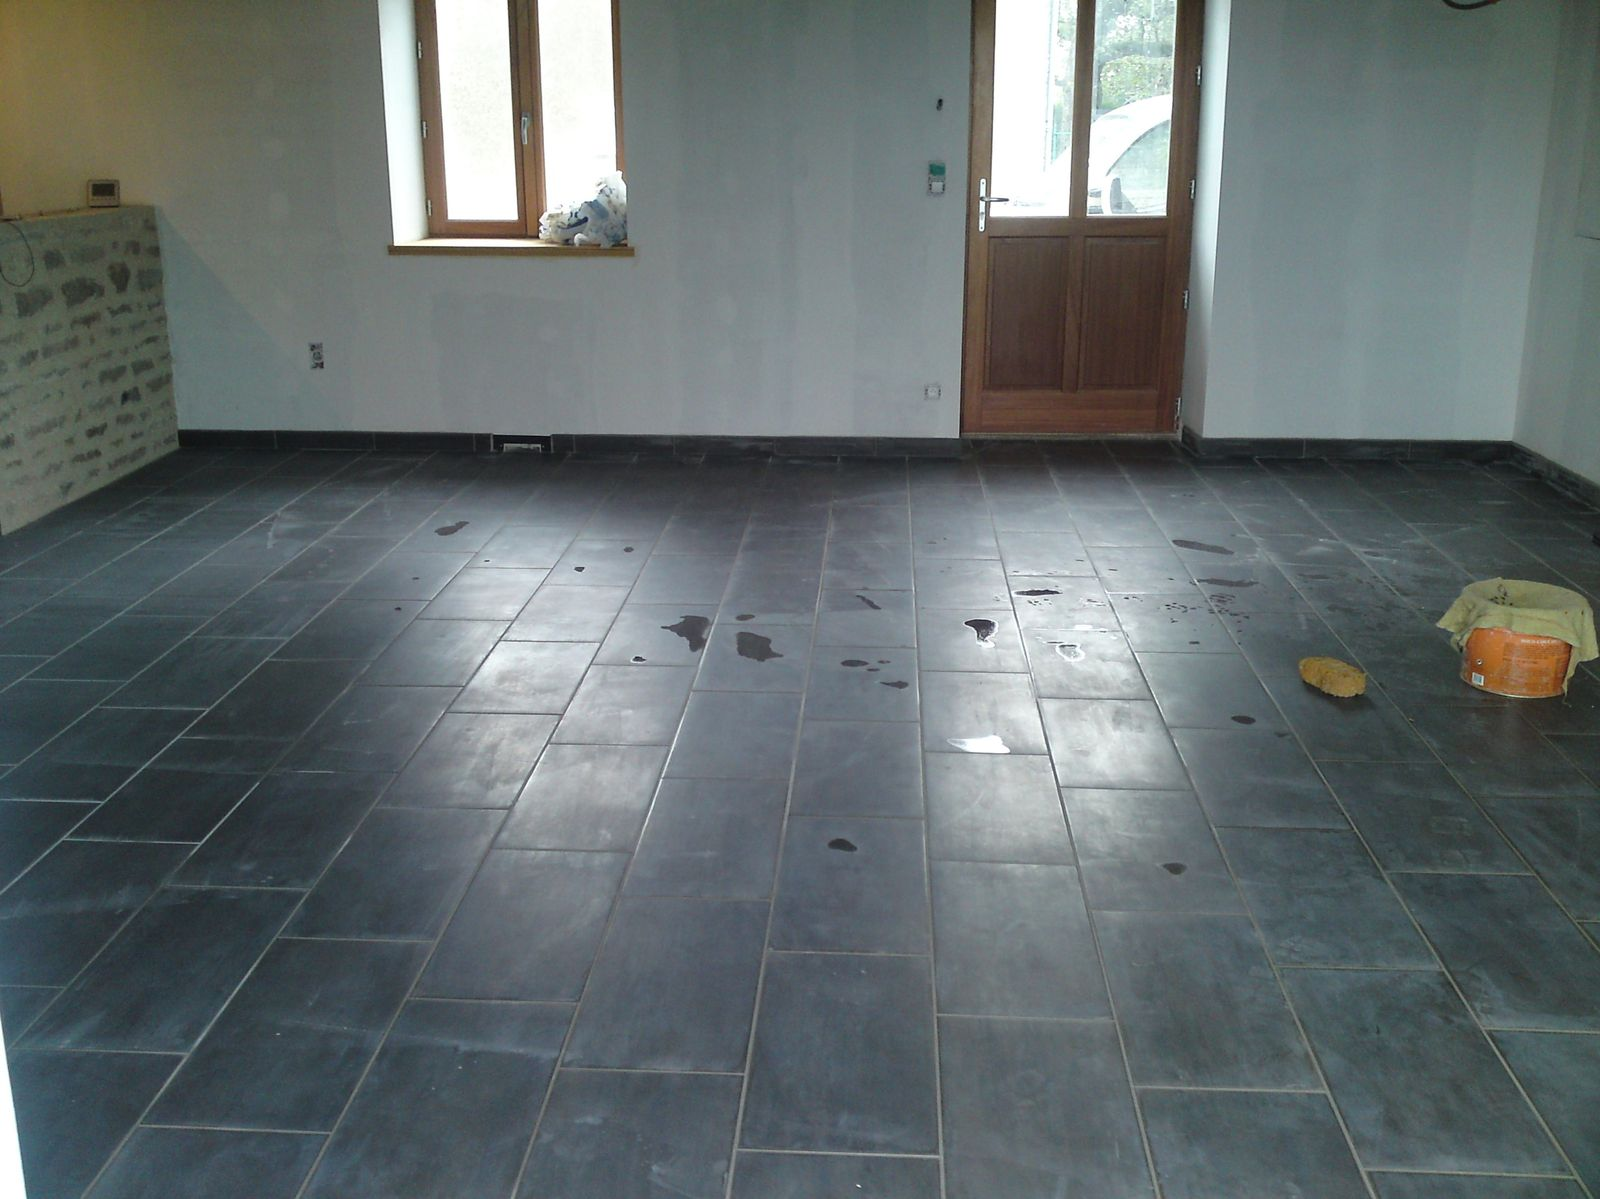 Joints de carrelage renovation d 39 une fermette en bourgogne for Nettoyage carrelage ancien